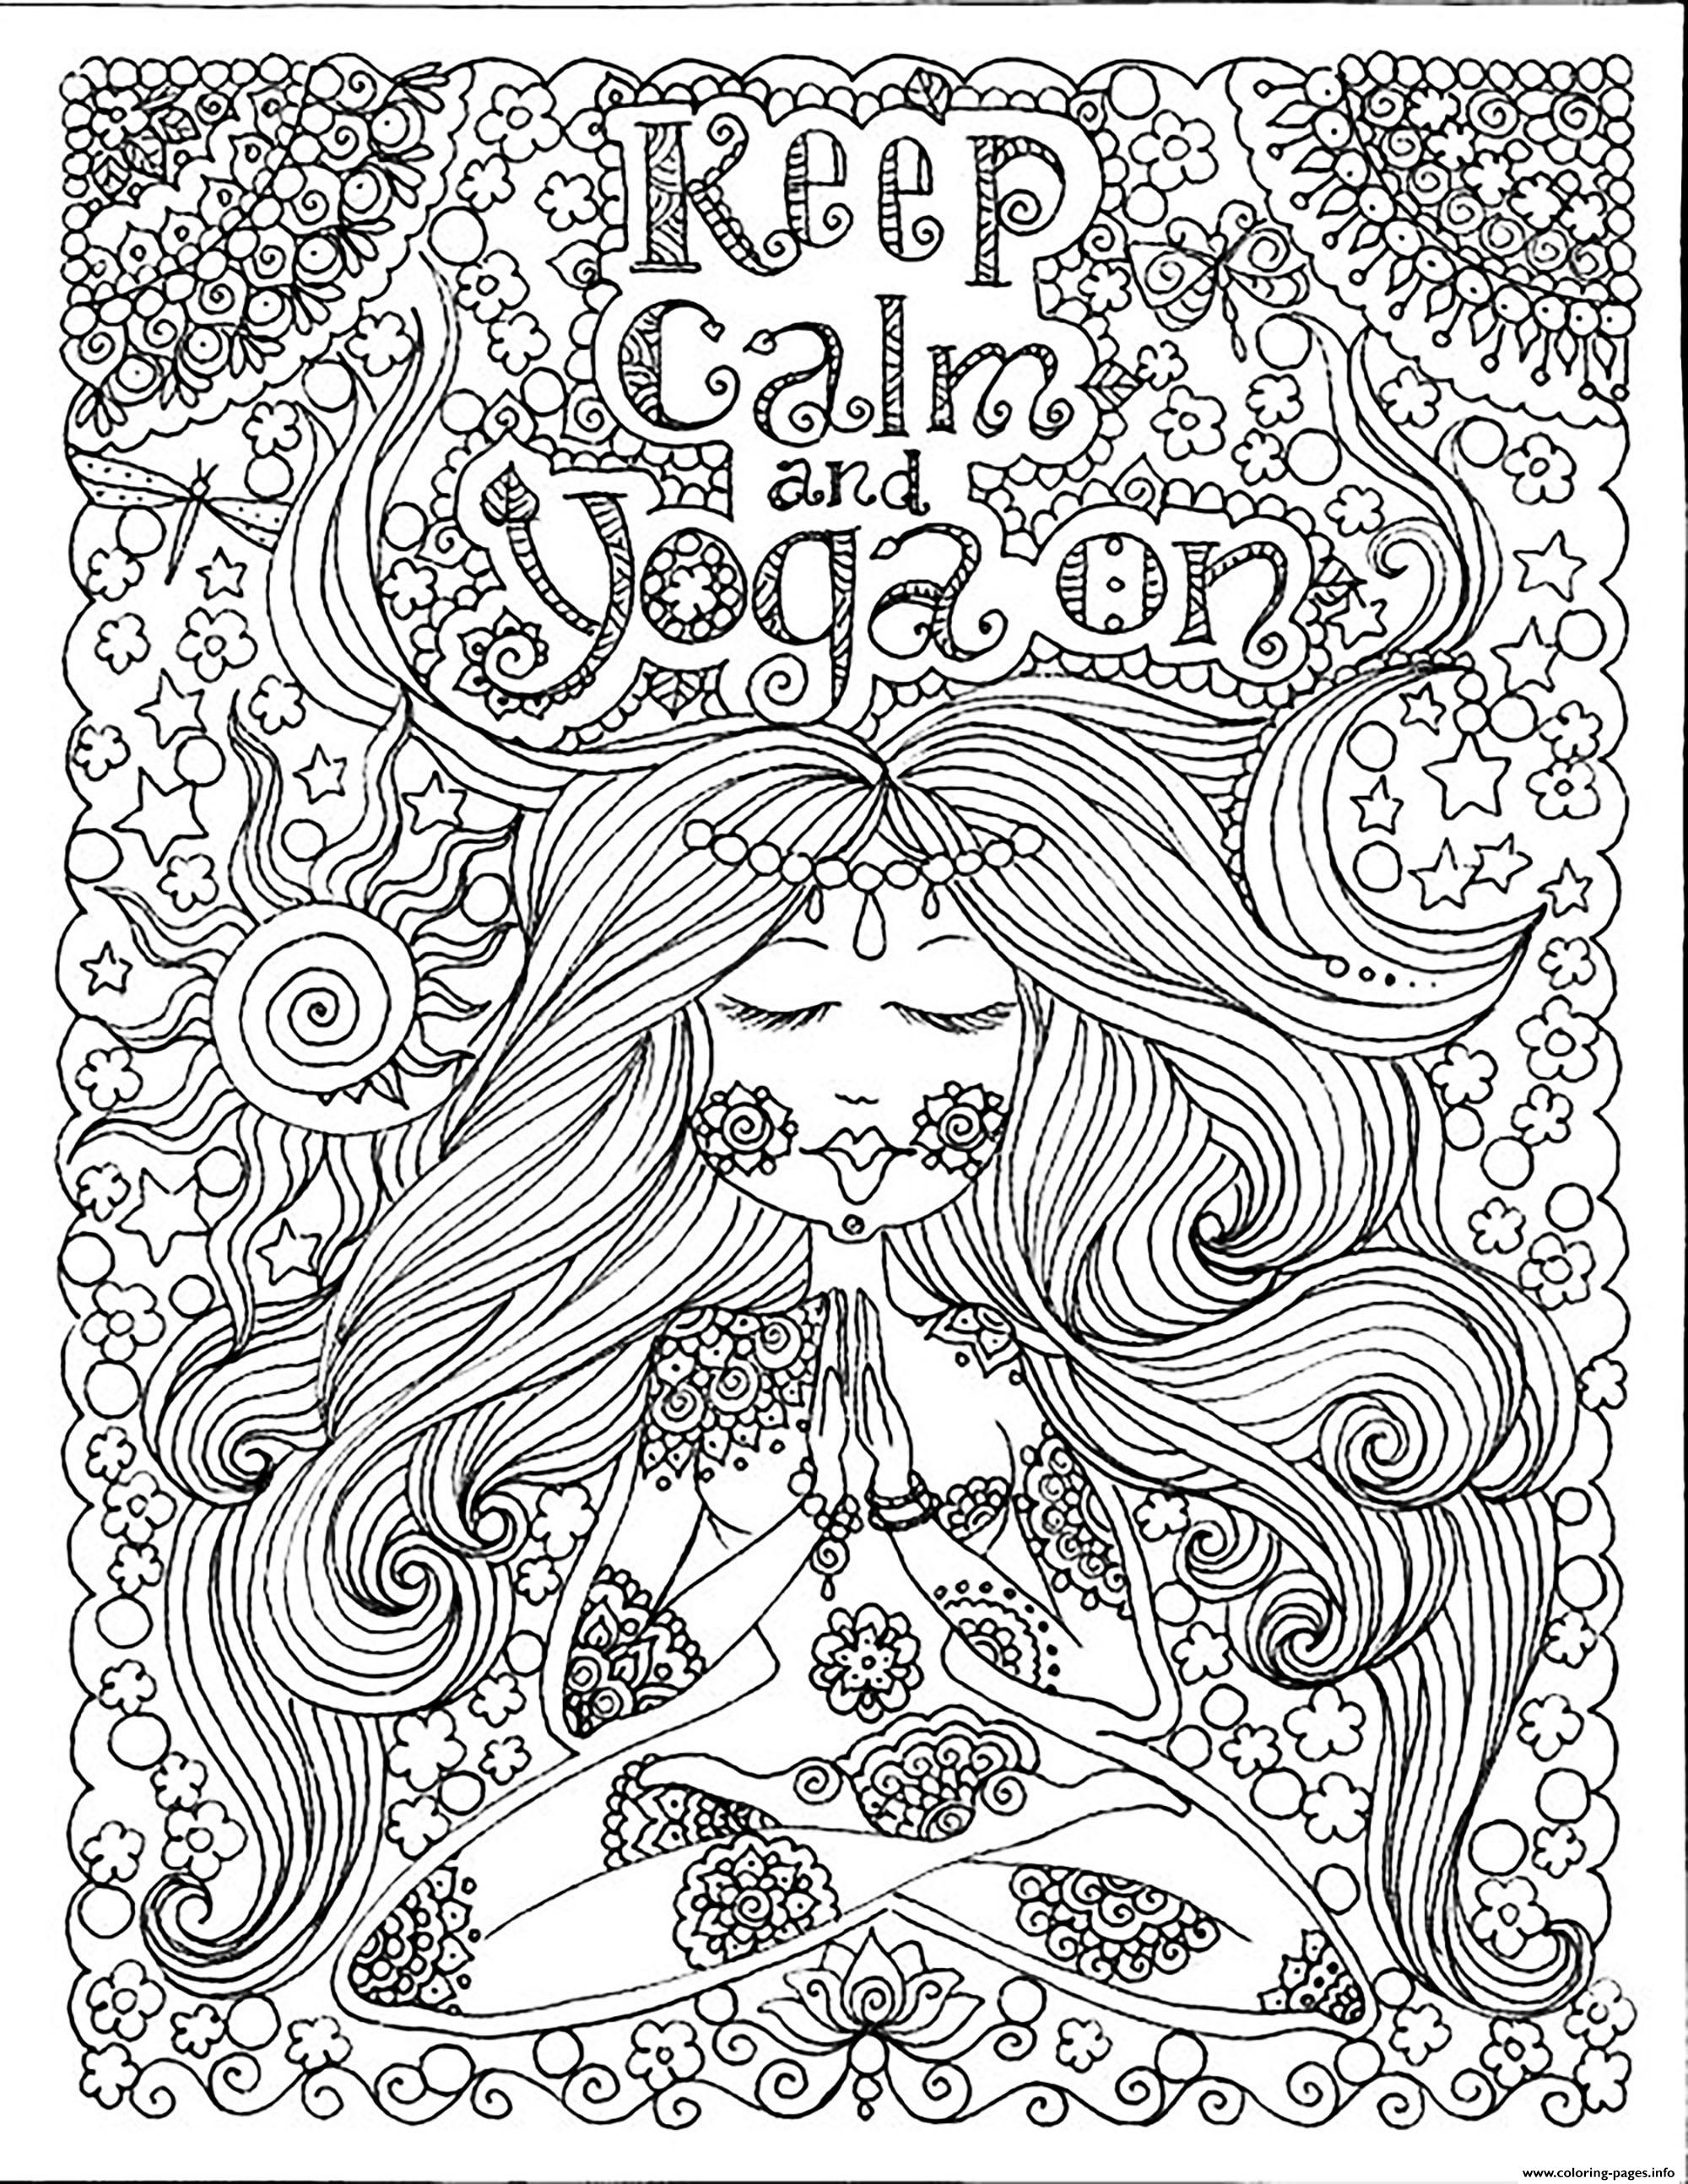 Adult Keep Calm And Do Yoga By Deborah Muller Coloring Pages